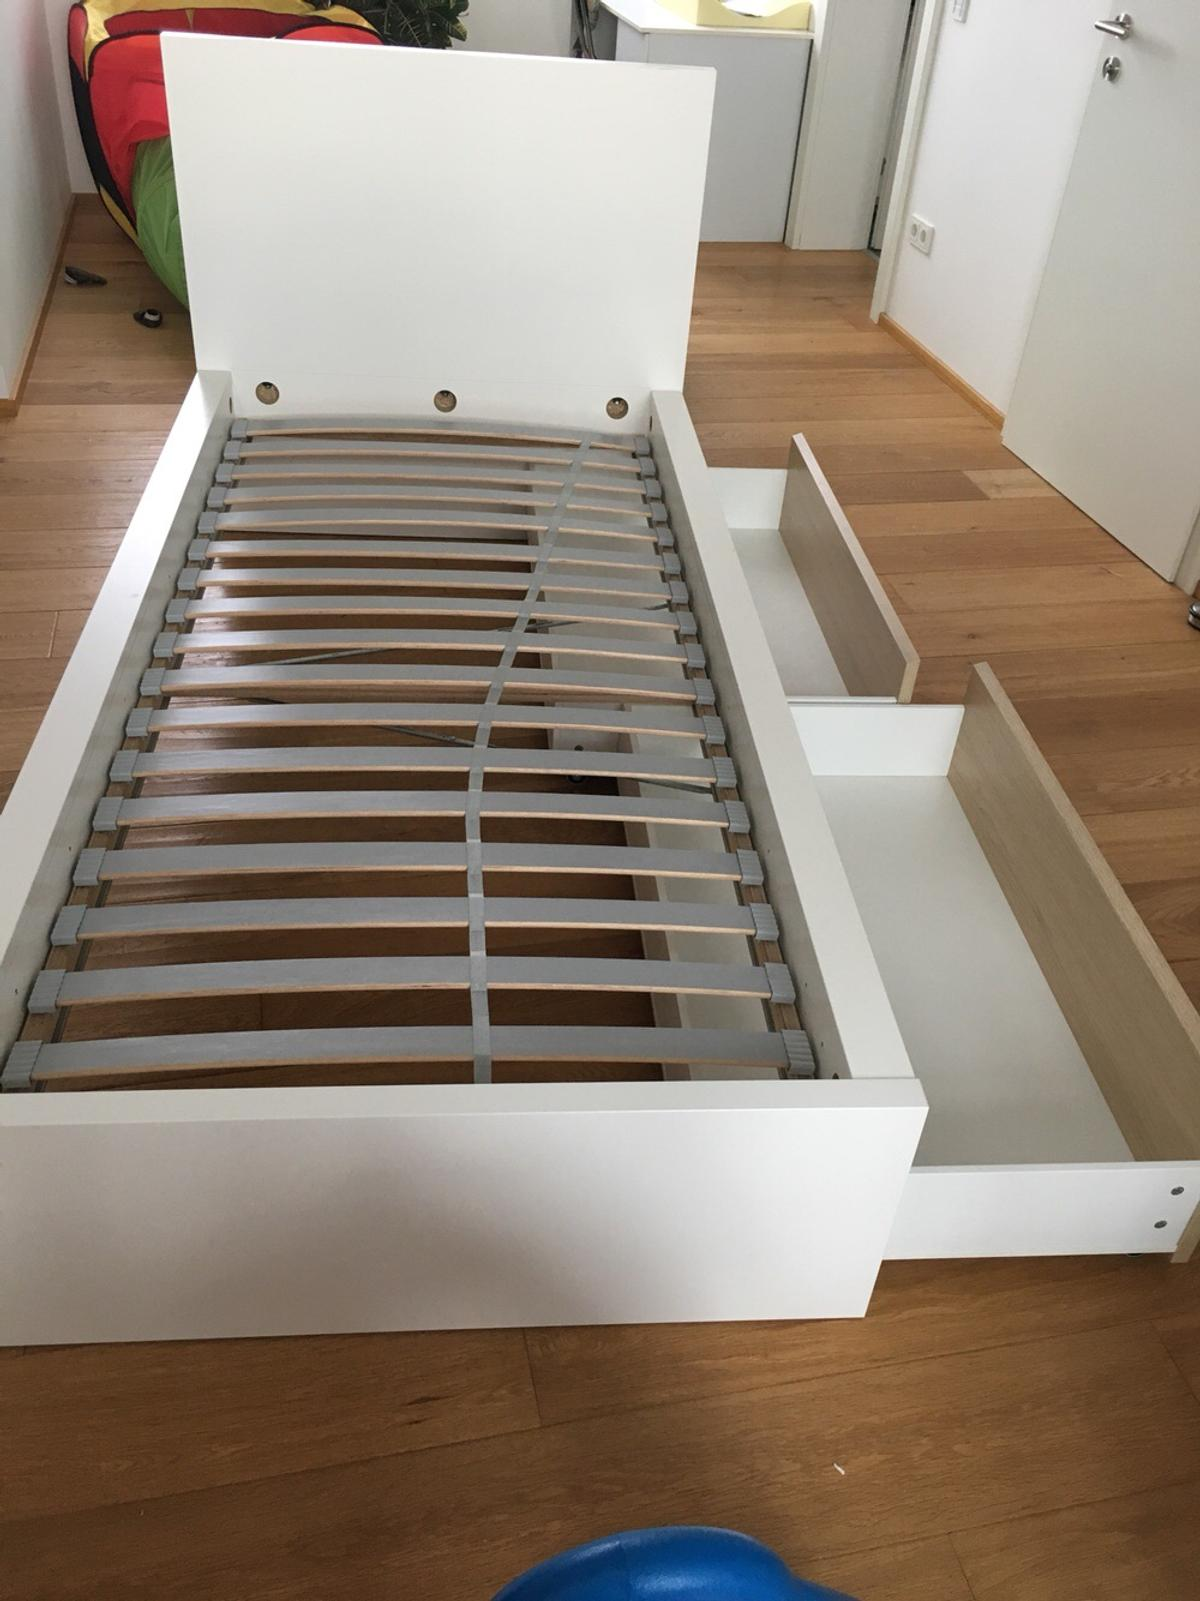 Ikea Malm Bett 90x200 Mit Lattenrost Laden In 2126 Gemeinde Ladendorf For 40 00 For Sale Shpock